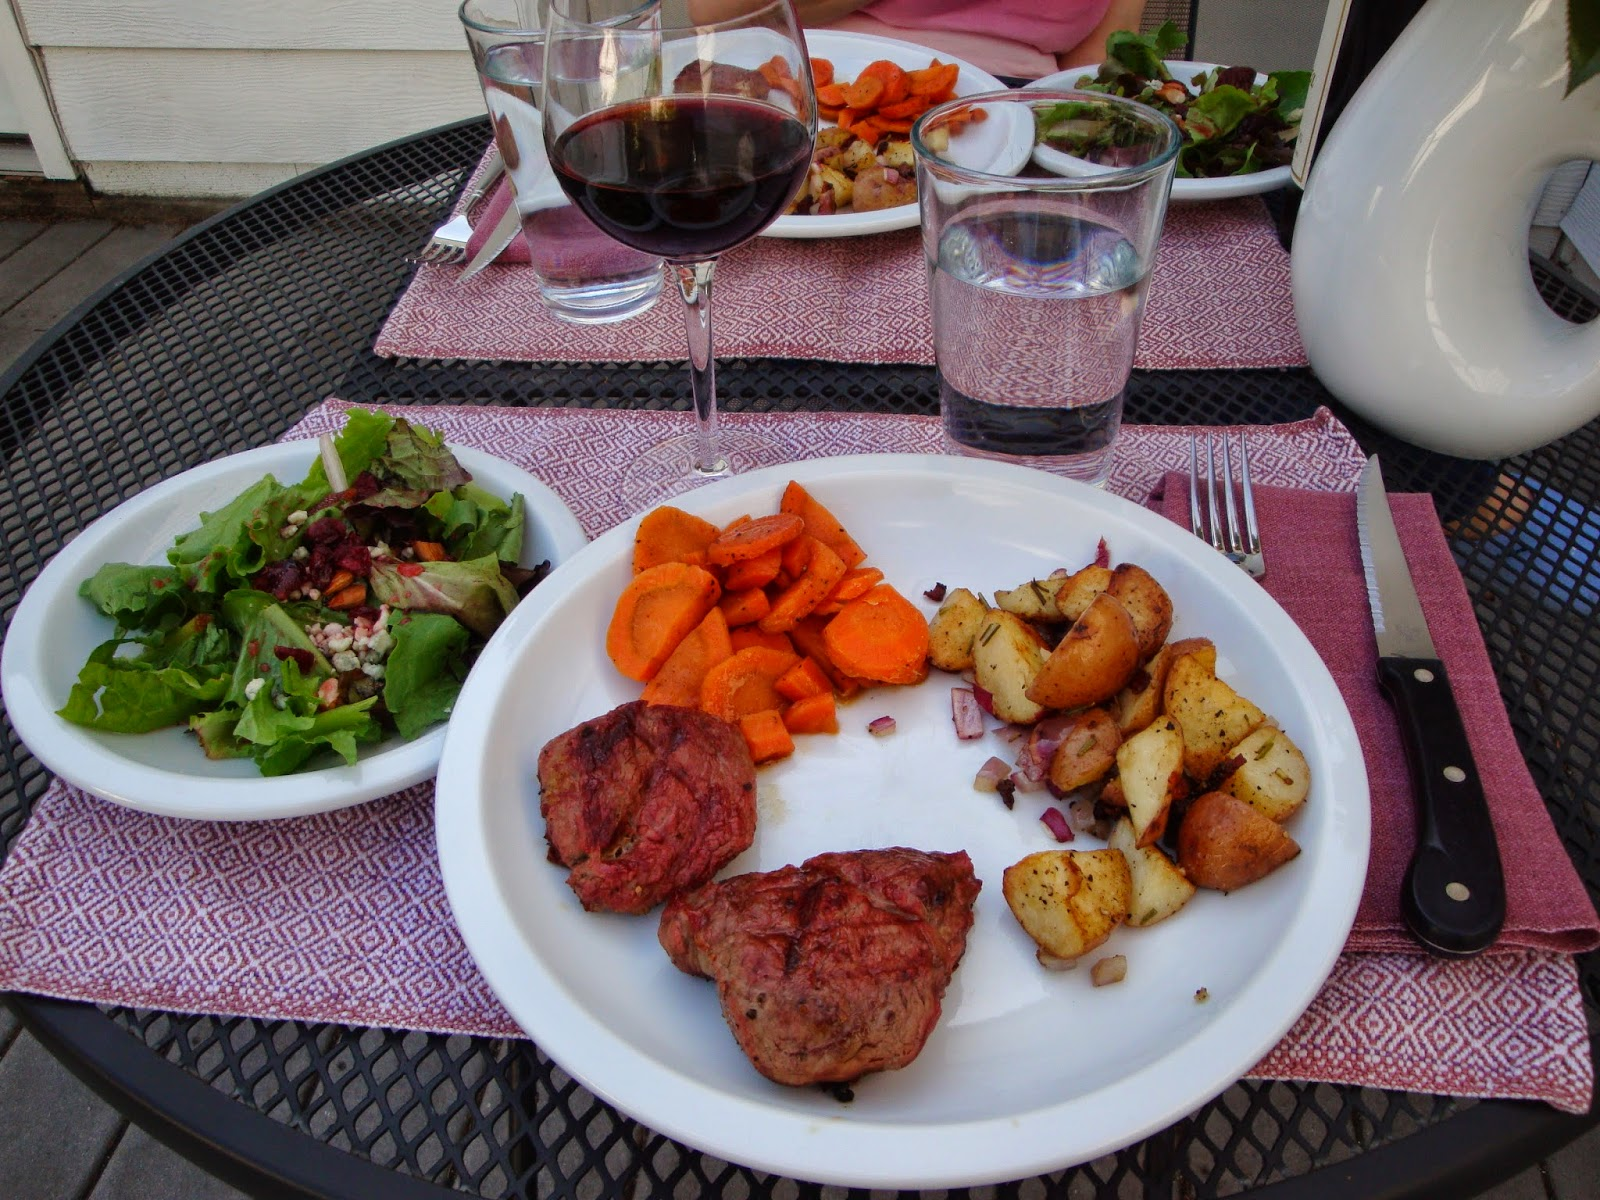 Steak, salad, carrots and potatoes local food pairing with local wine